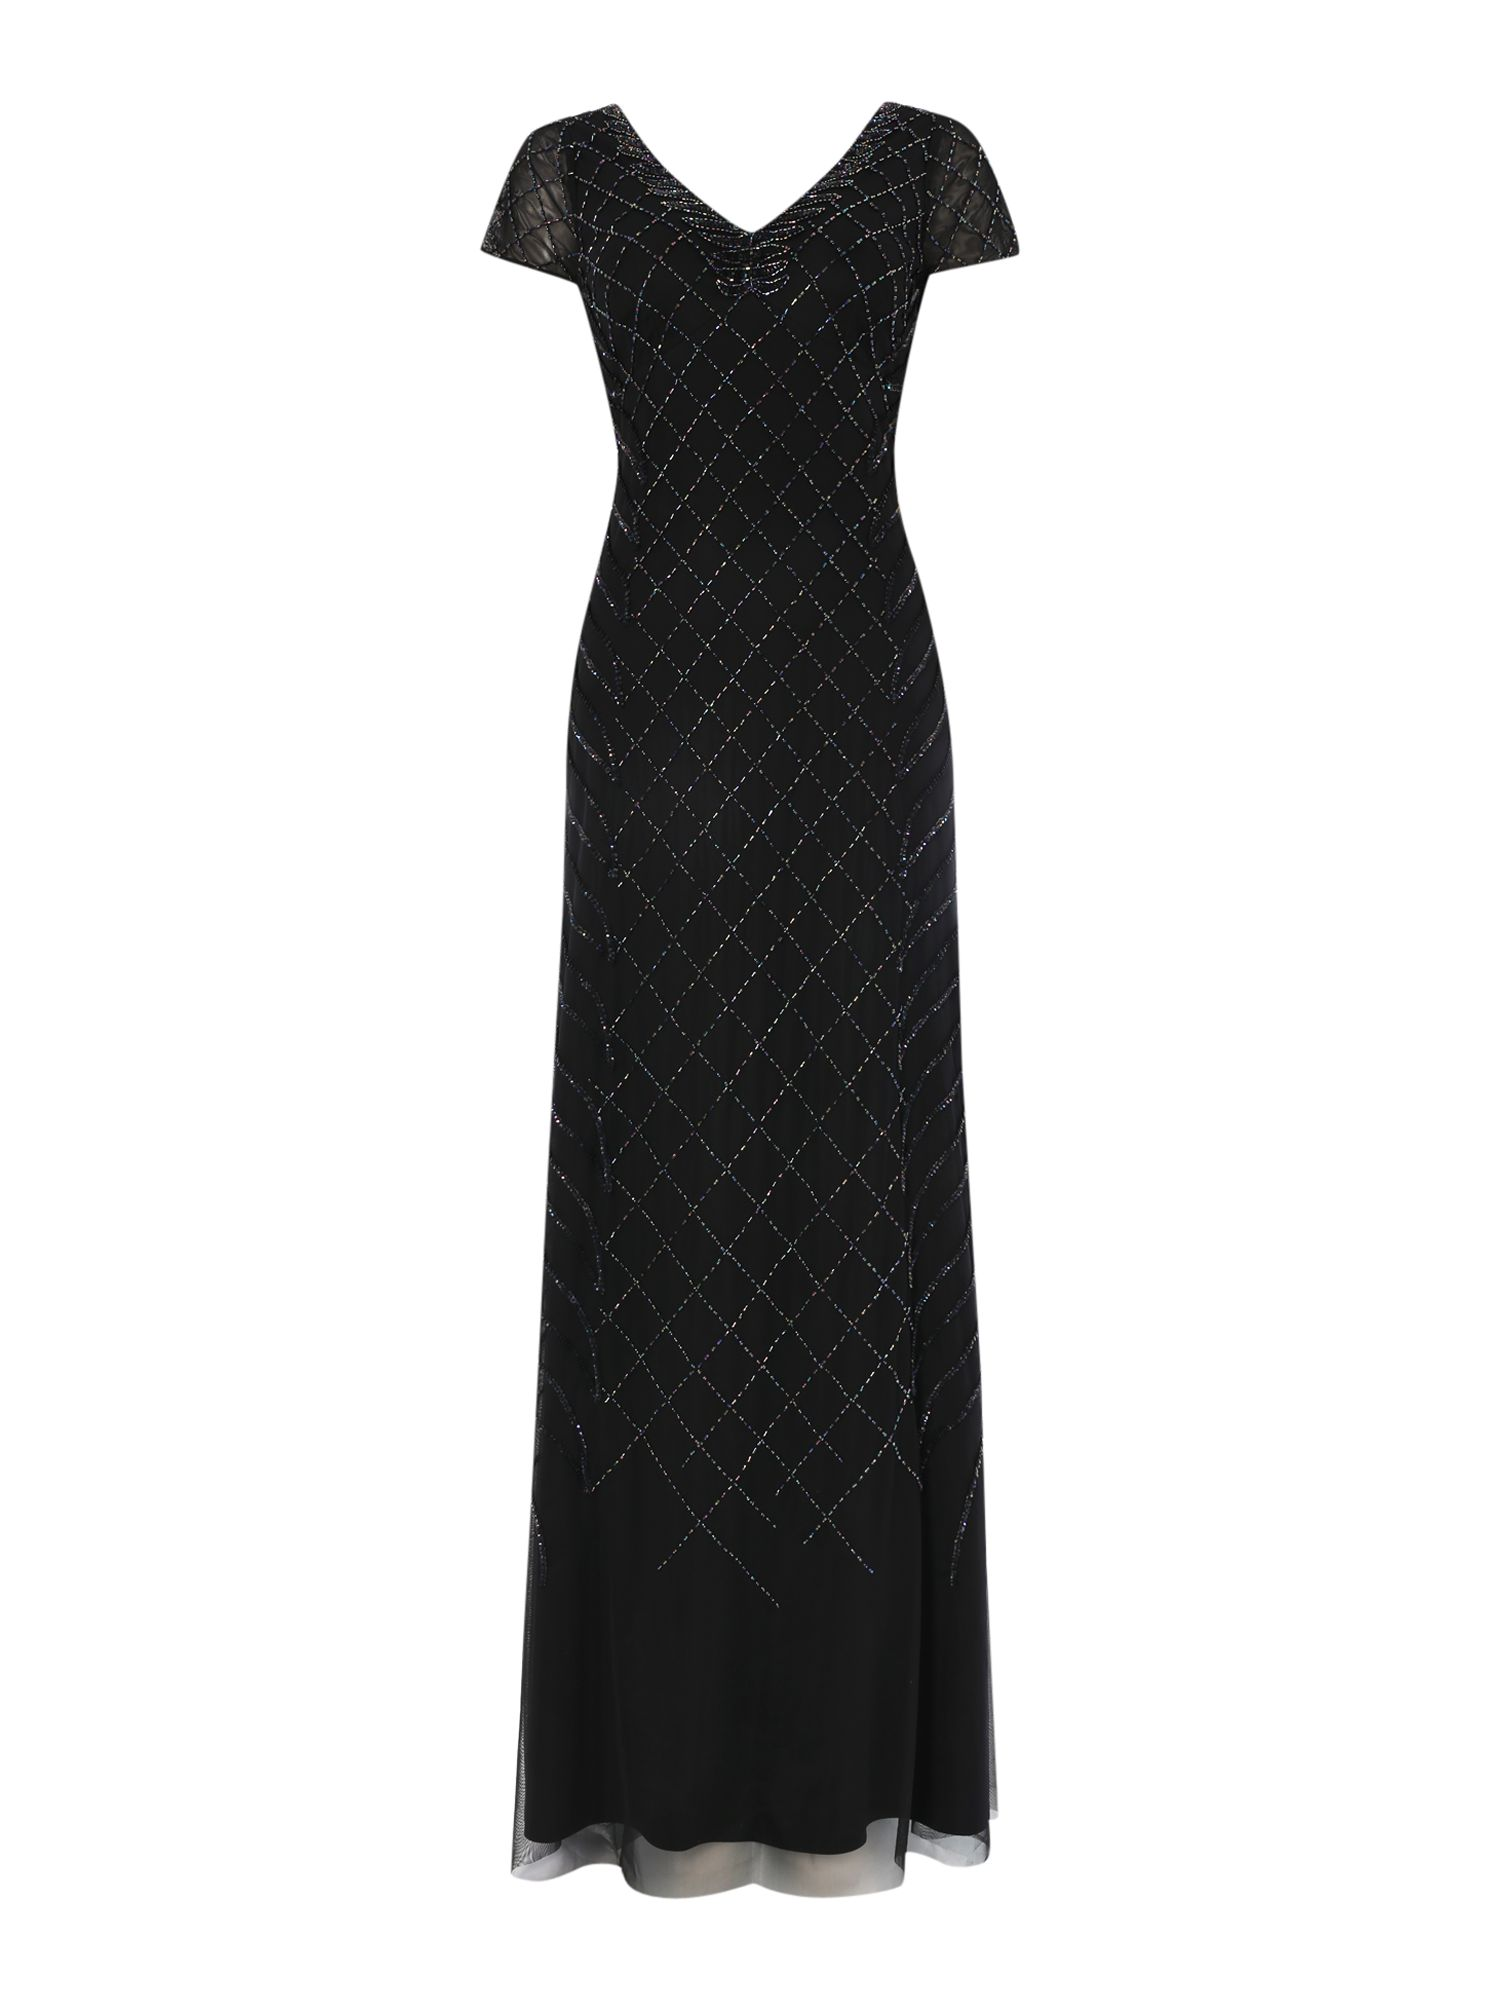 Adrianna Papell Cap sleeve gown with diamond sequin pattern, Black